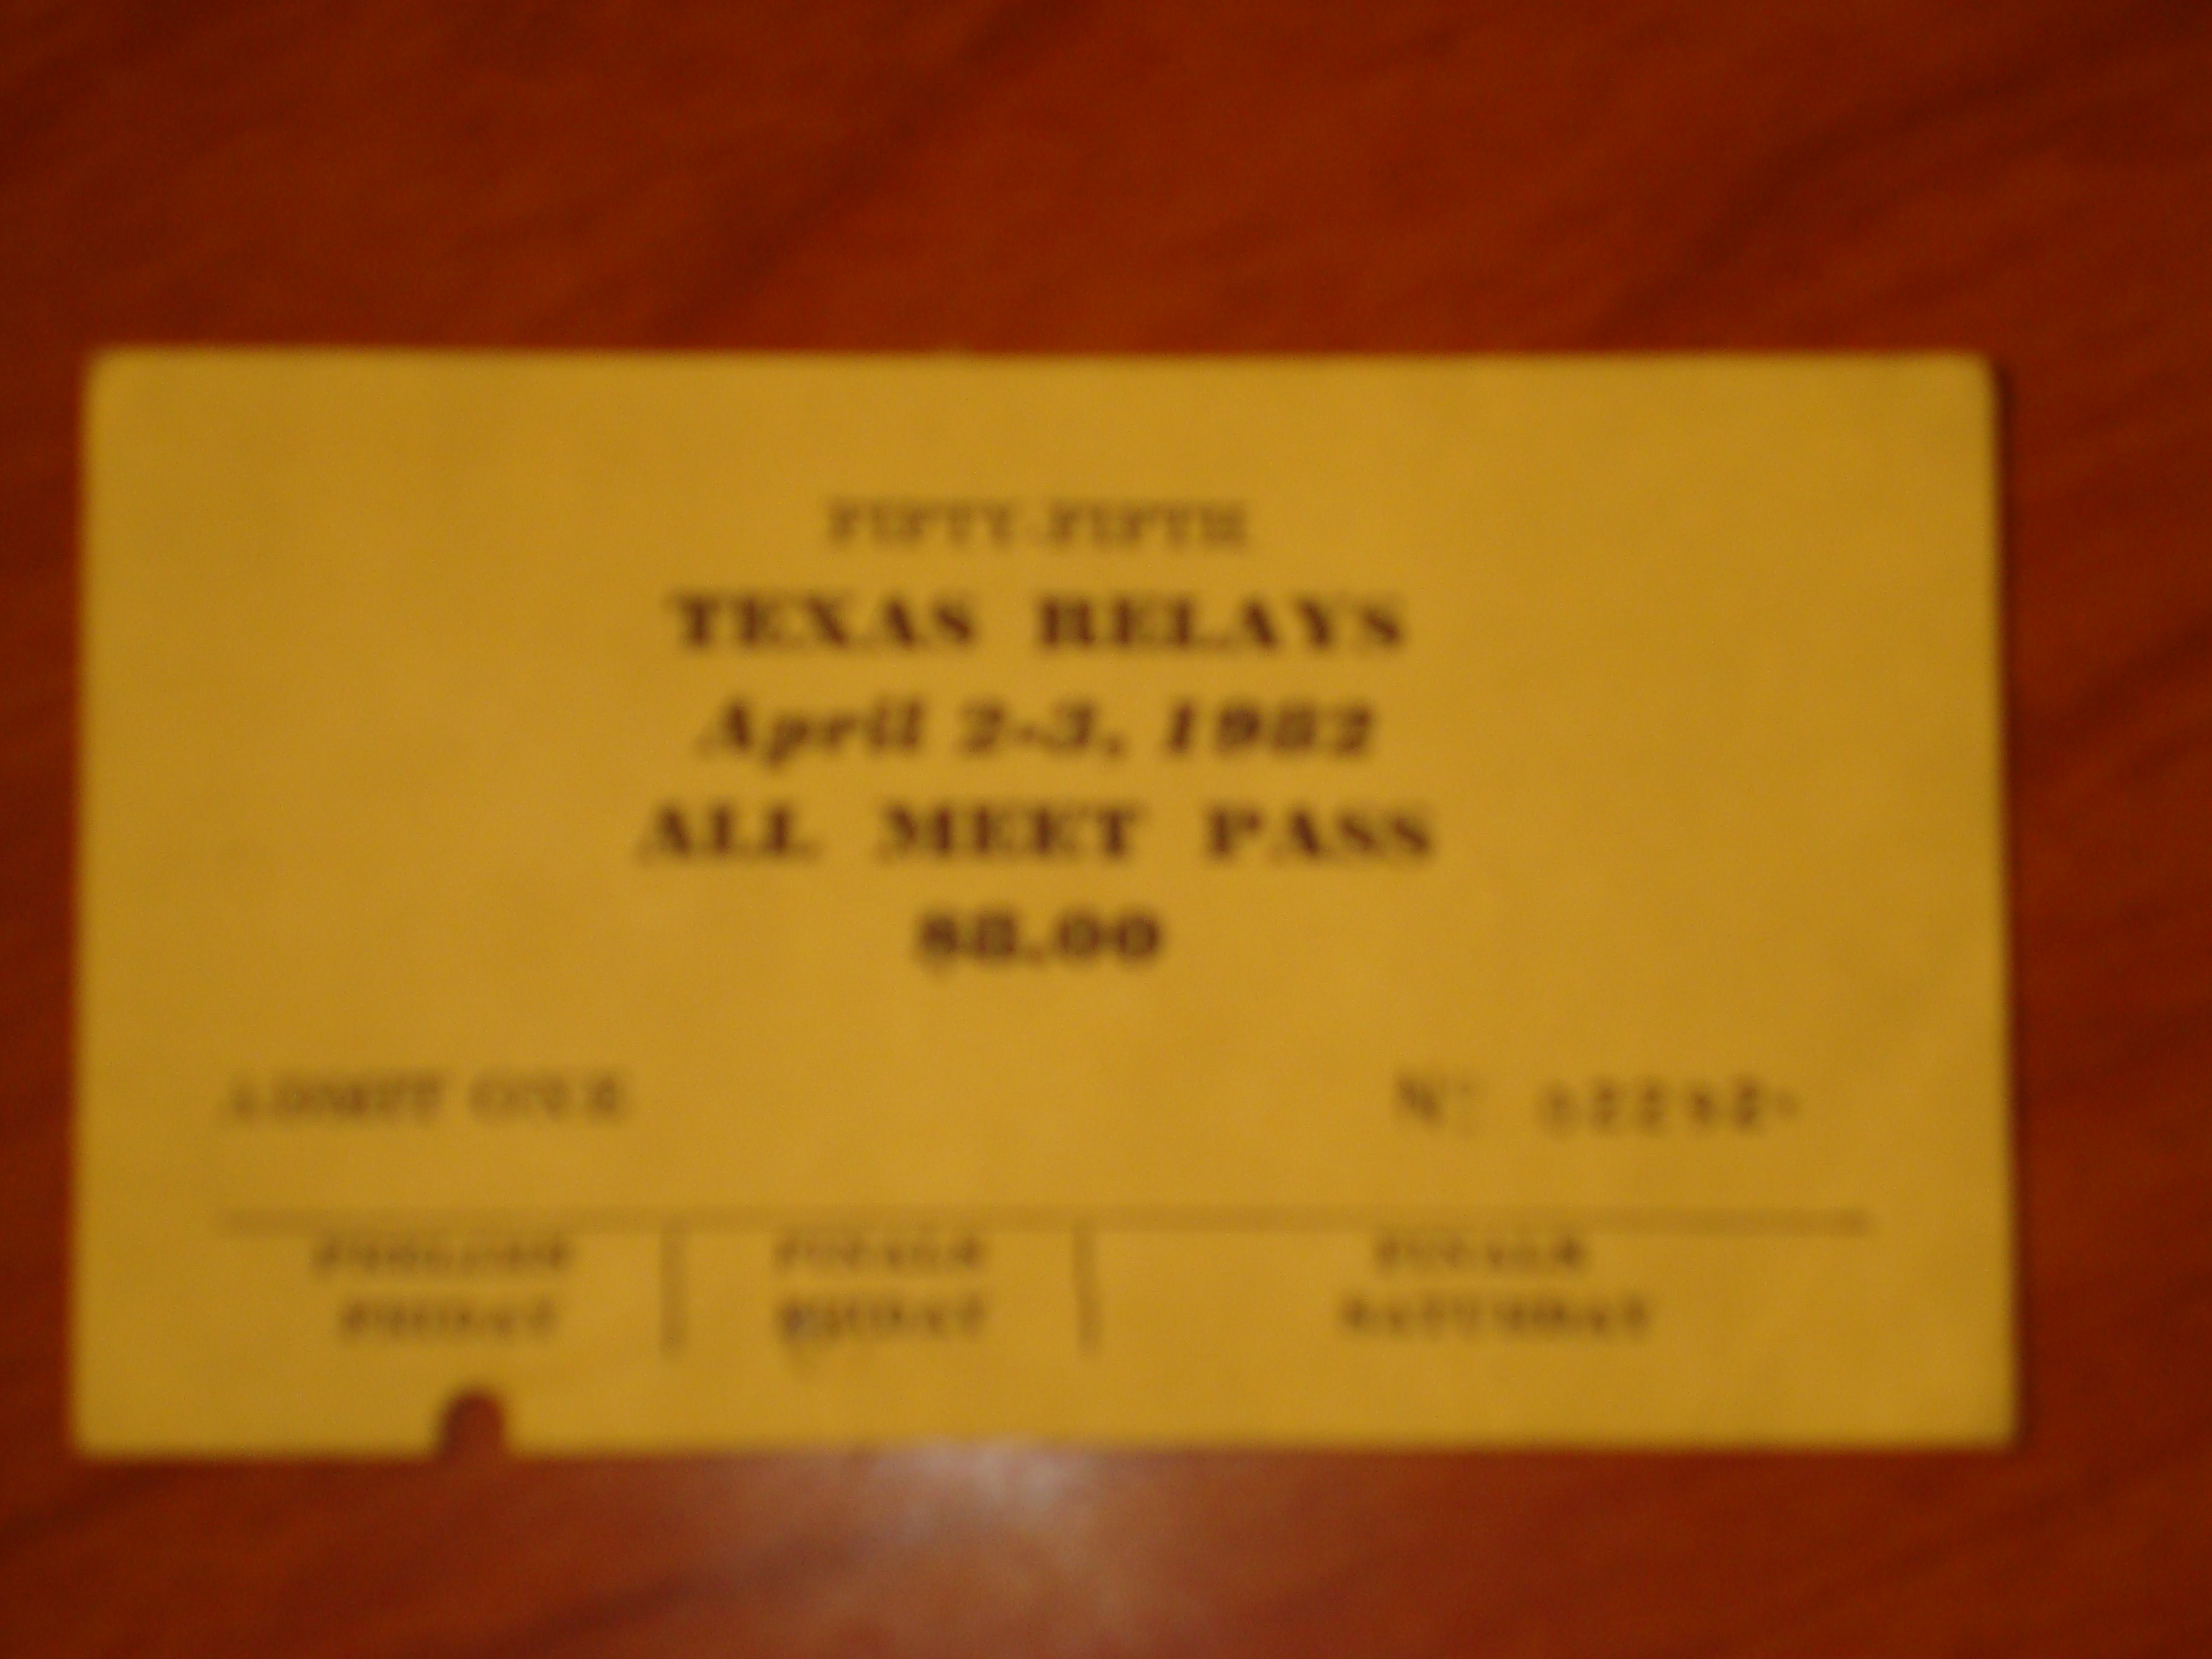 Official All Meet Pass for April 2-3, 1982 Texas Relays at Royal Memorial Stadium at University of Texas, Austin, TX